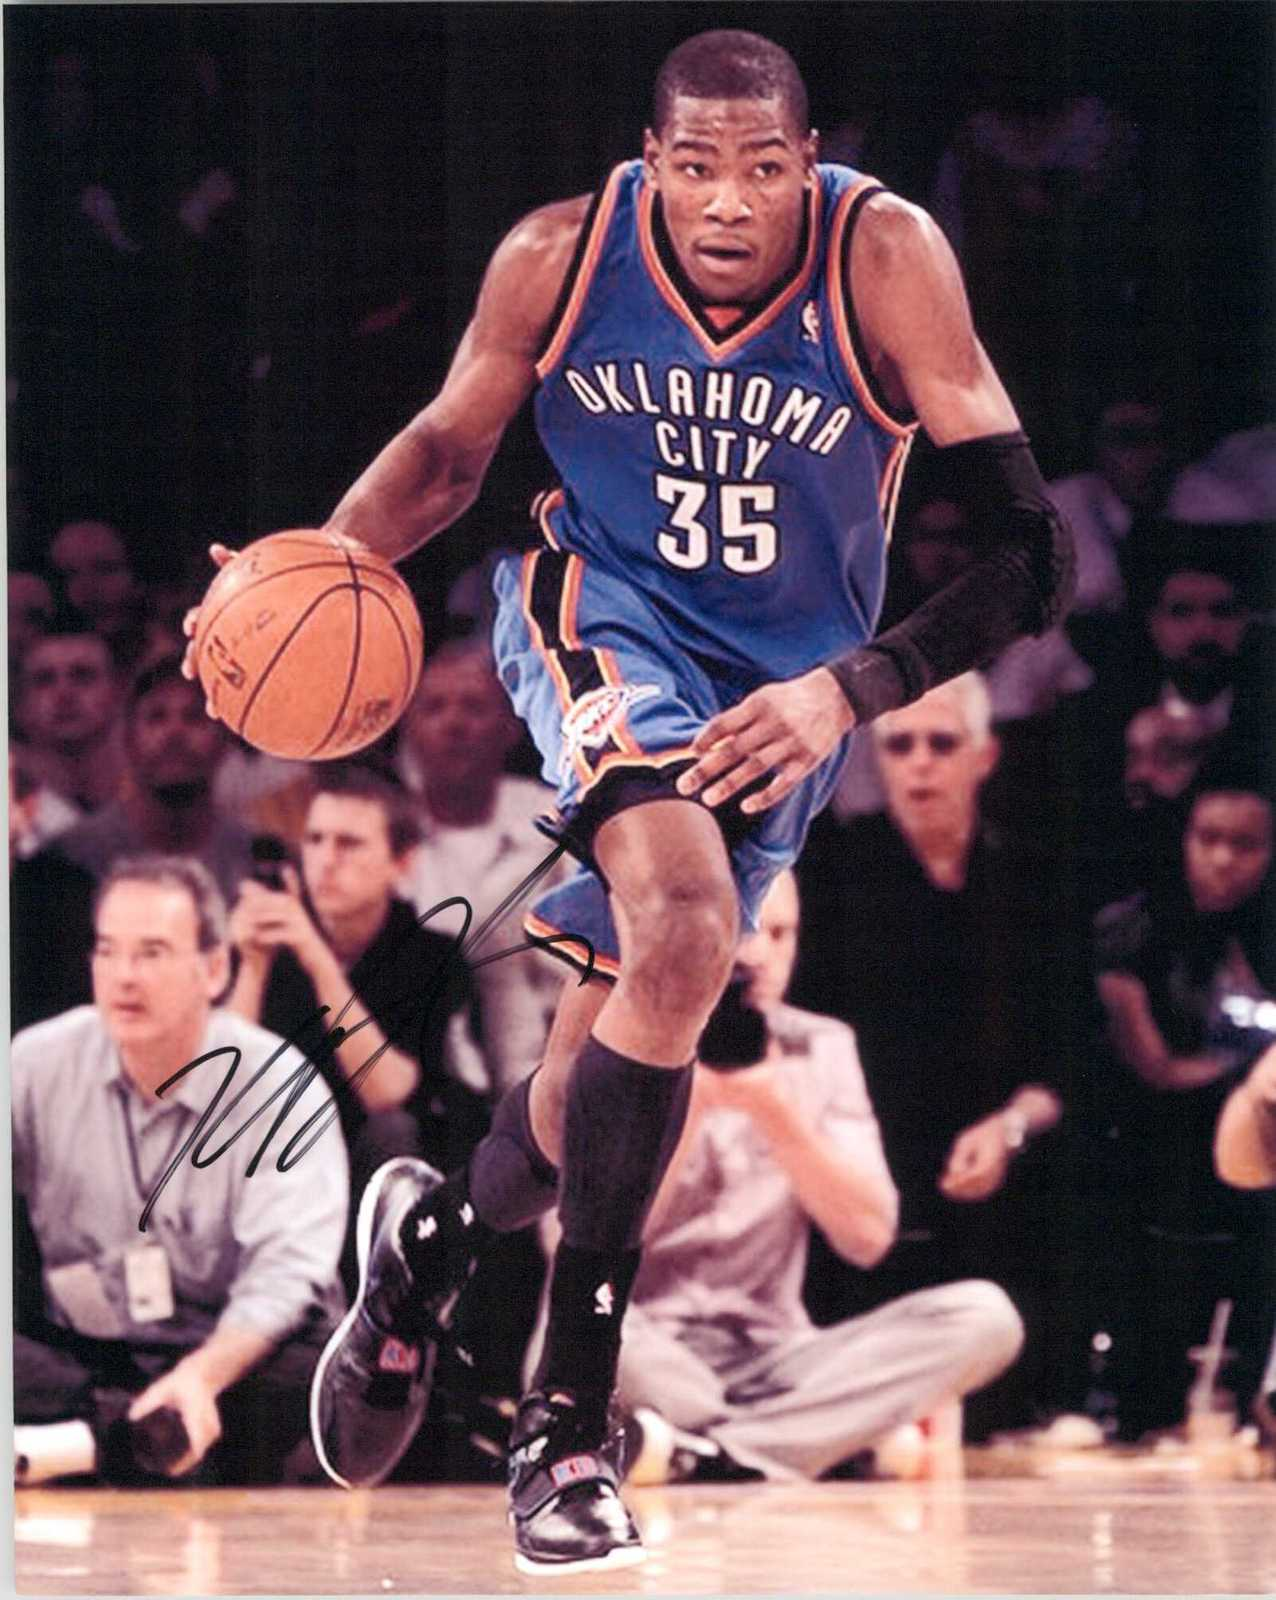 Primary image for Kevin Durant Signed Autographed Glossy 8x10 Photo - Oklahoma City Thunder